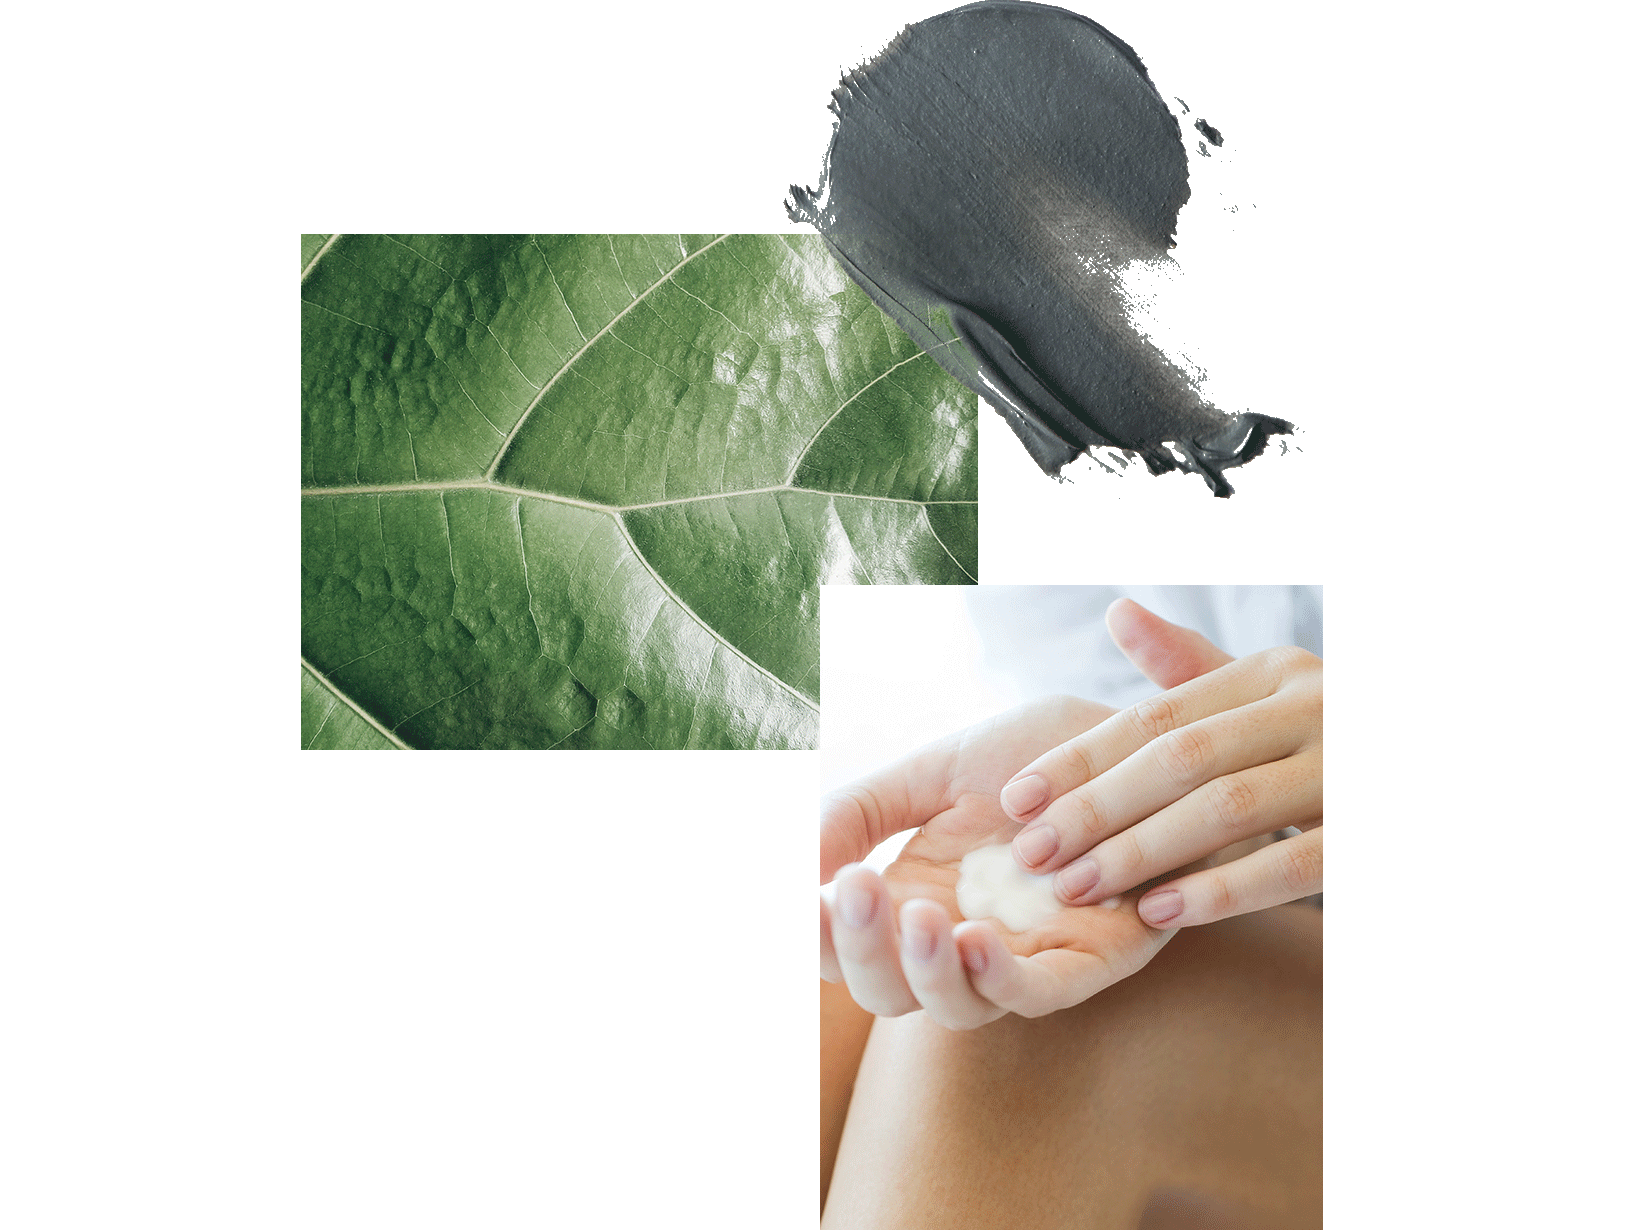 leaf-close-up-person-applying-cream